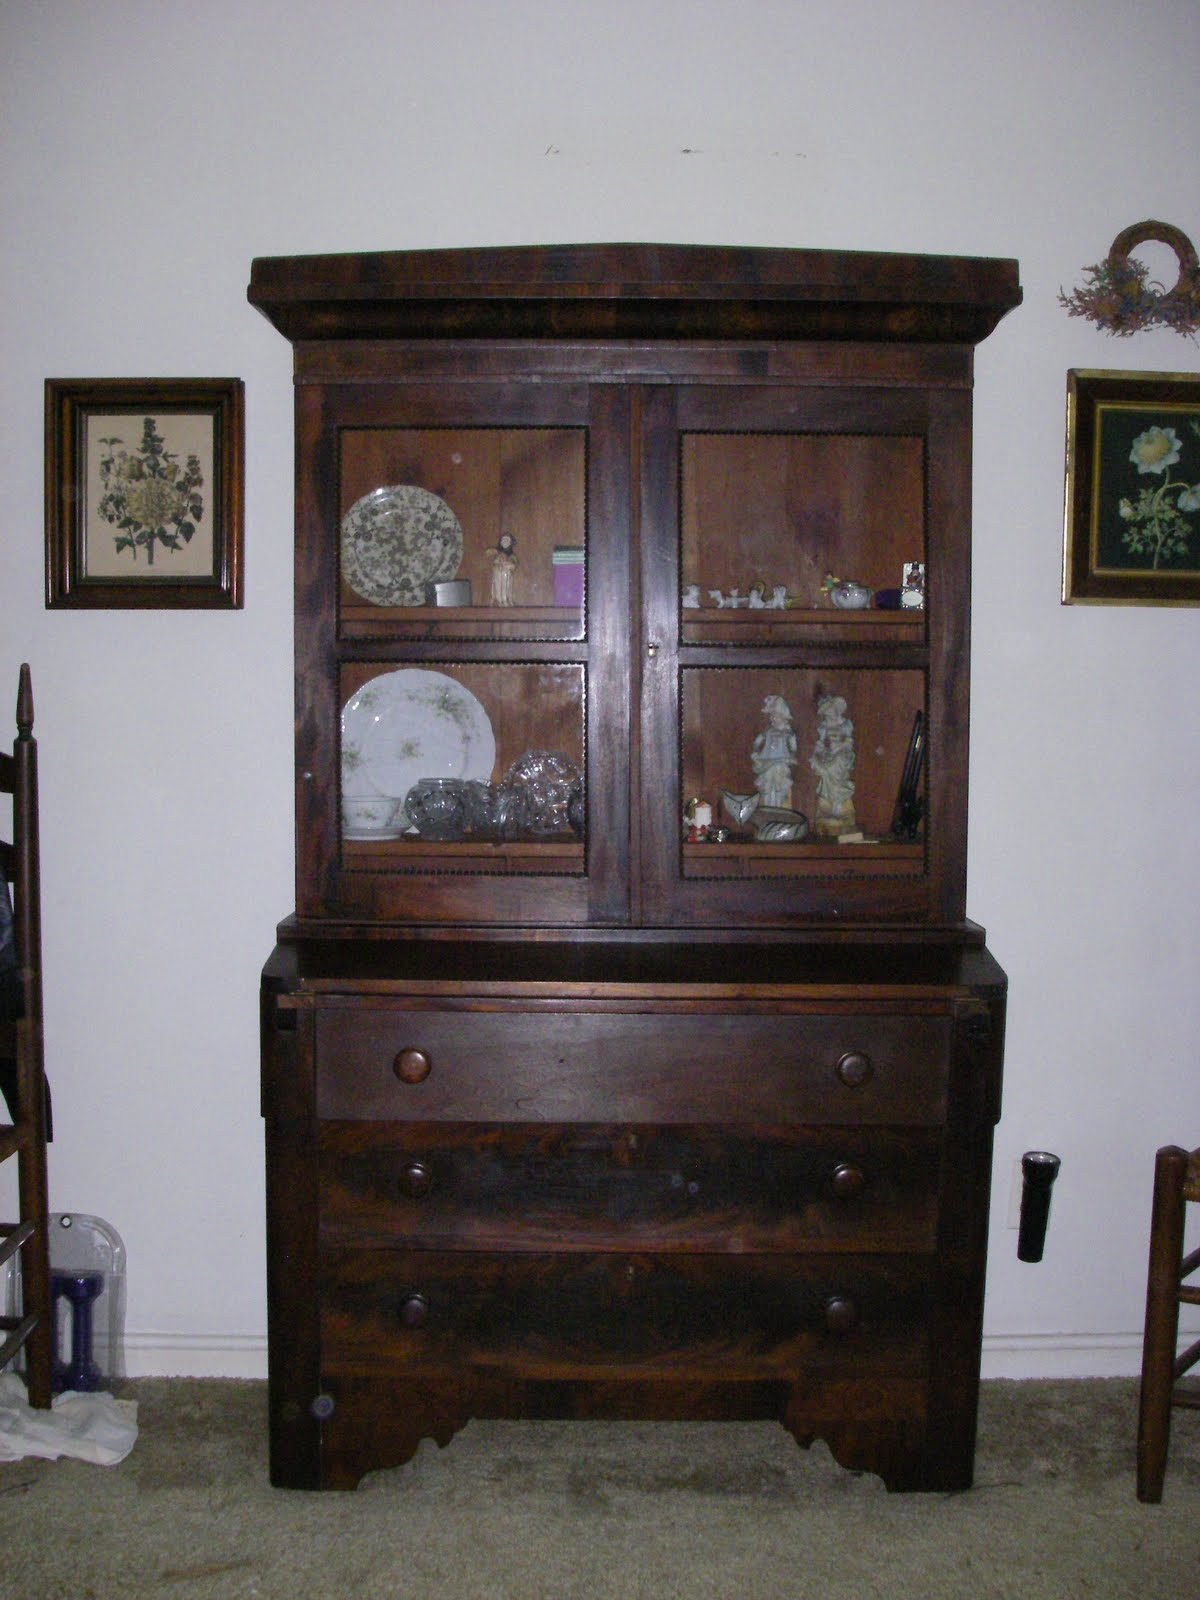 Yard sale furniture estate sale antique cabinet hutch for Furniture yard sale